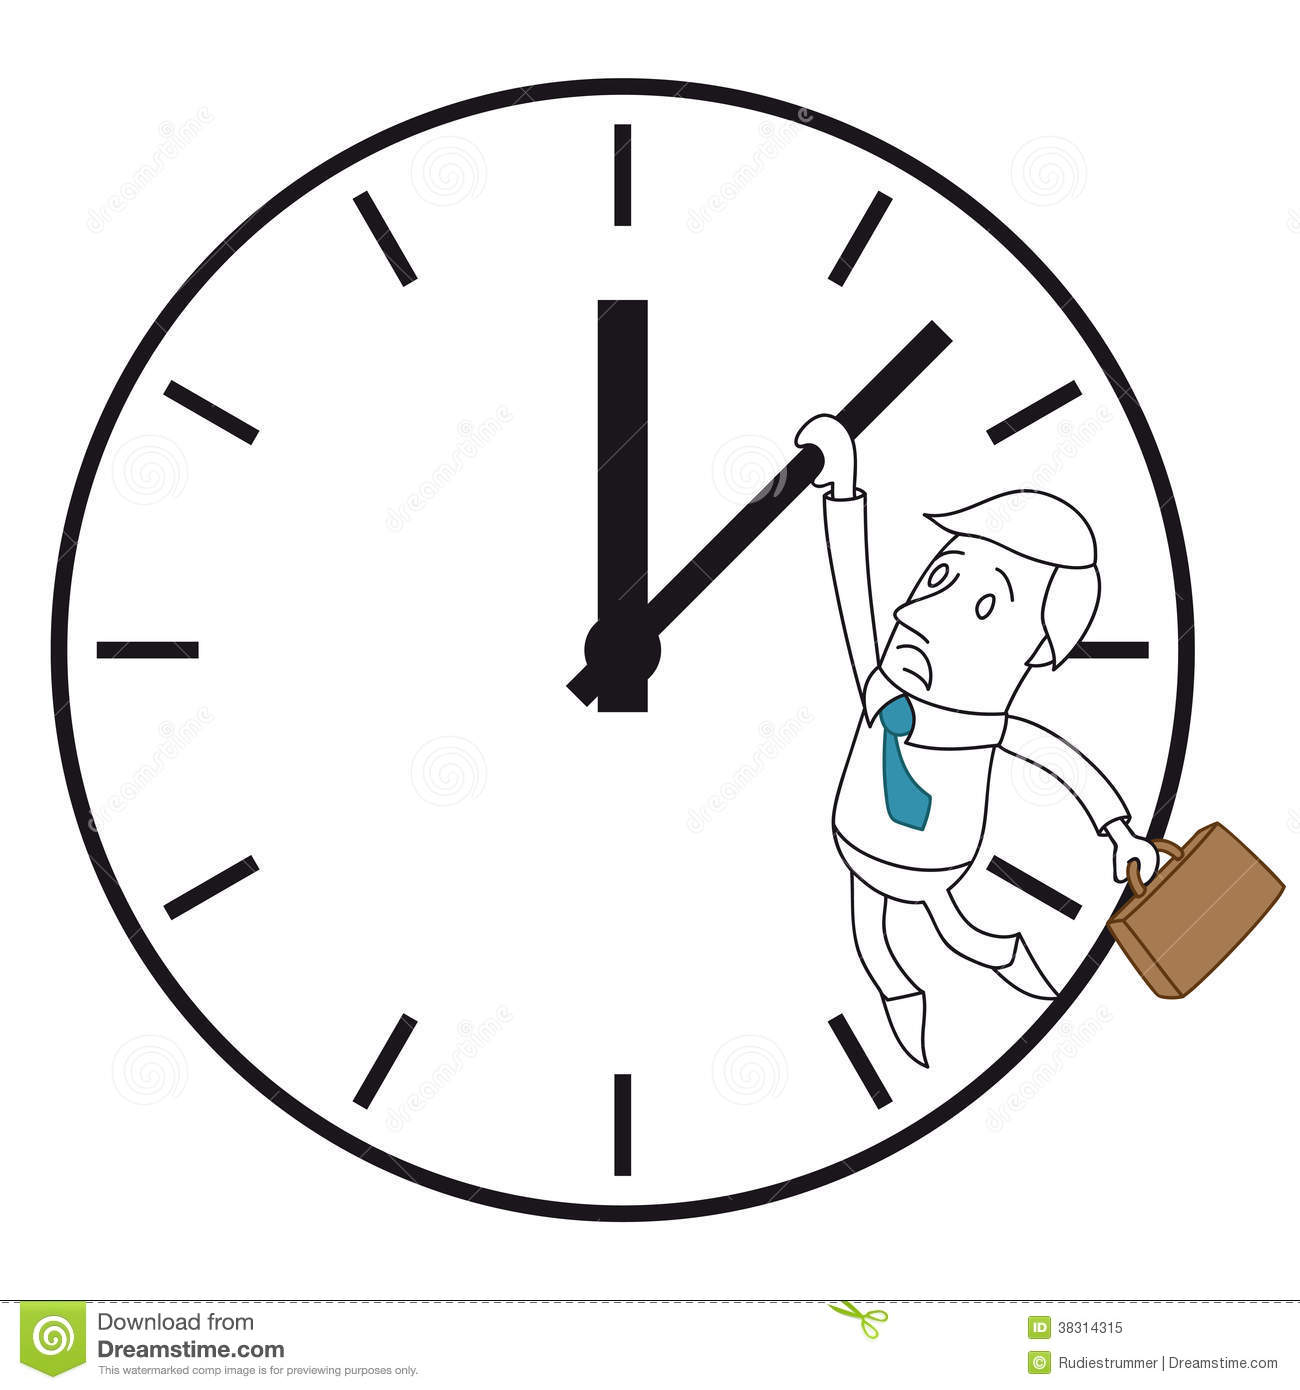 Tag Dessin D Horloge further Congreso Espanol further Svar raka1 likewise Neuronas Espejo Empatia Y Fibromialgia in addition Partitura Hey Jude. on se